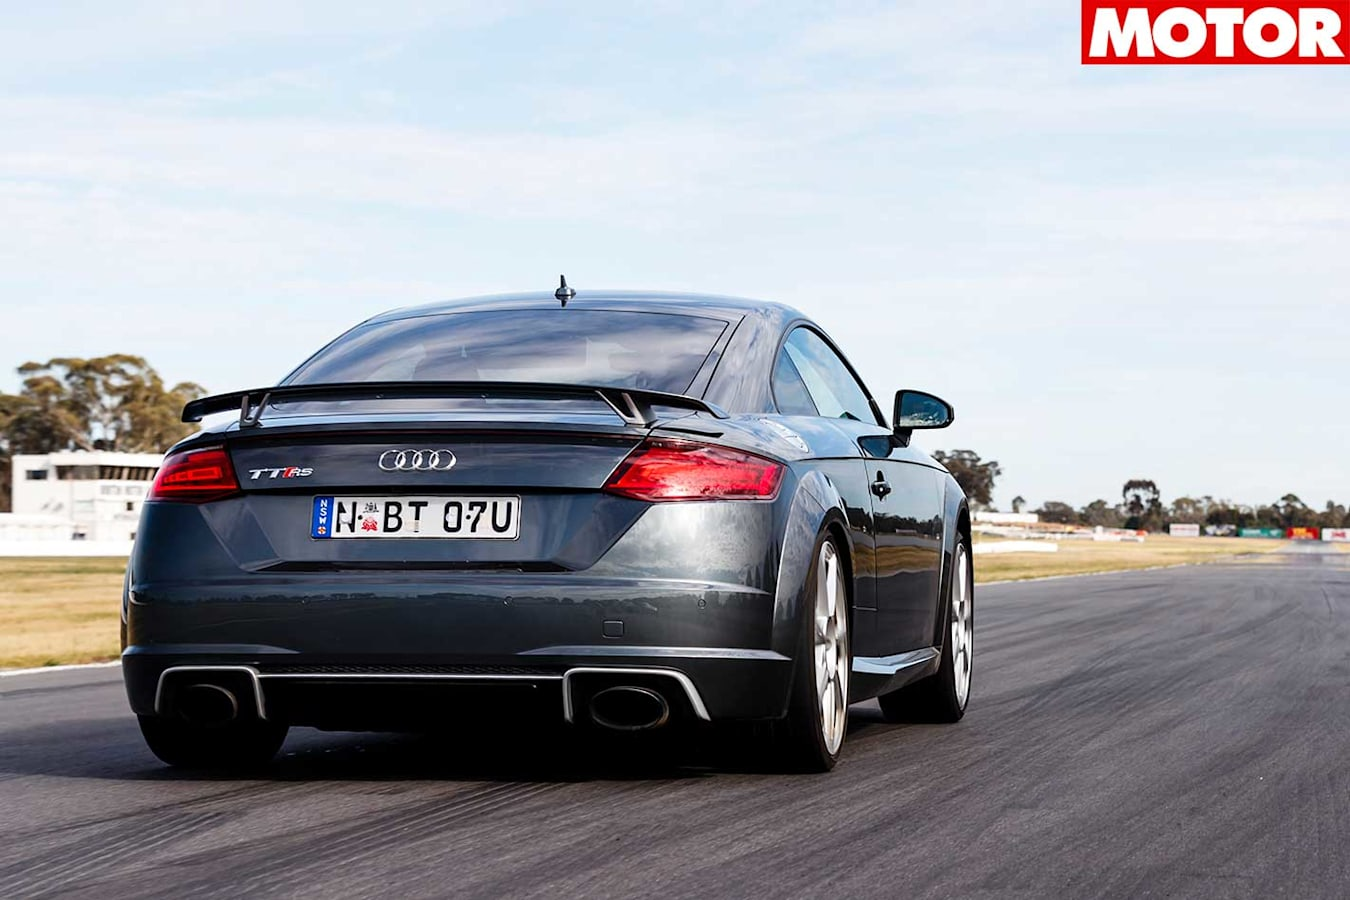 Audi TT RS Performance Car Of The Year 2018 Results Feature Jpg